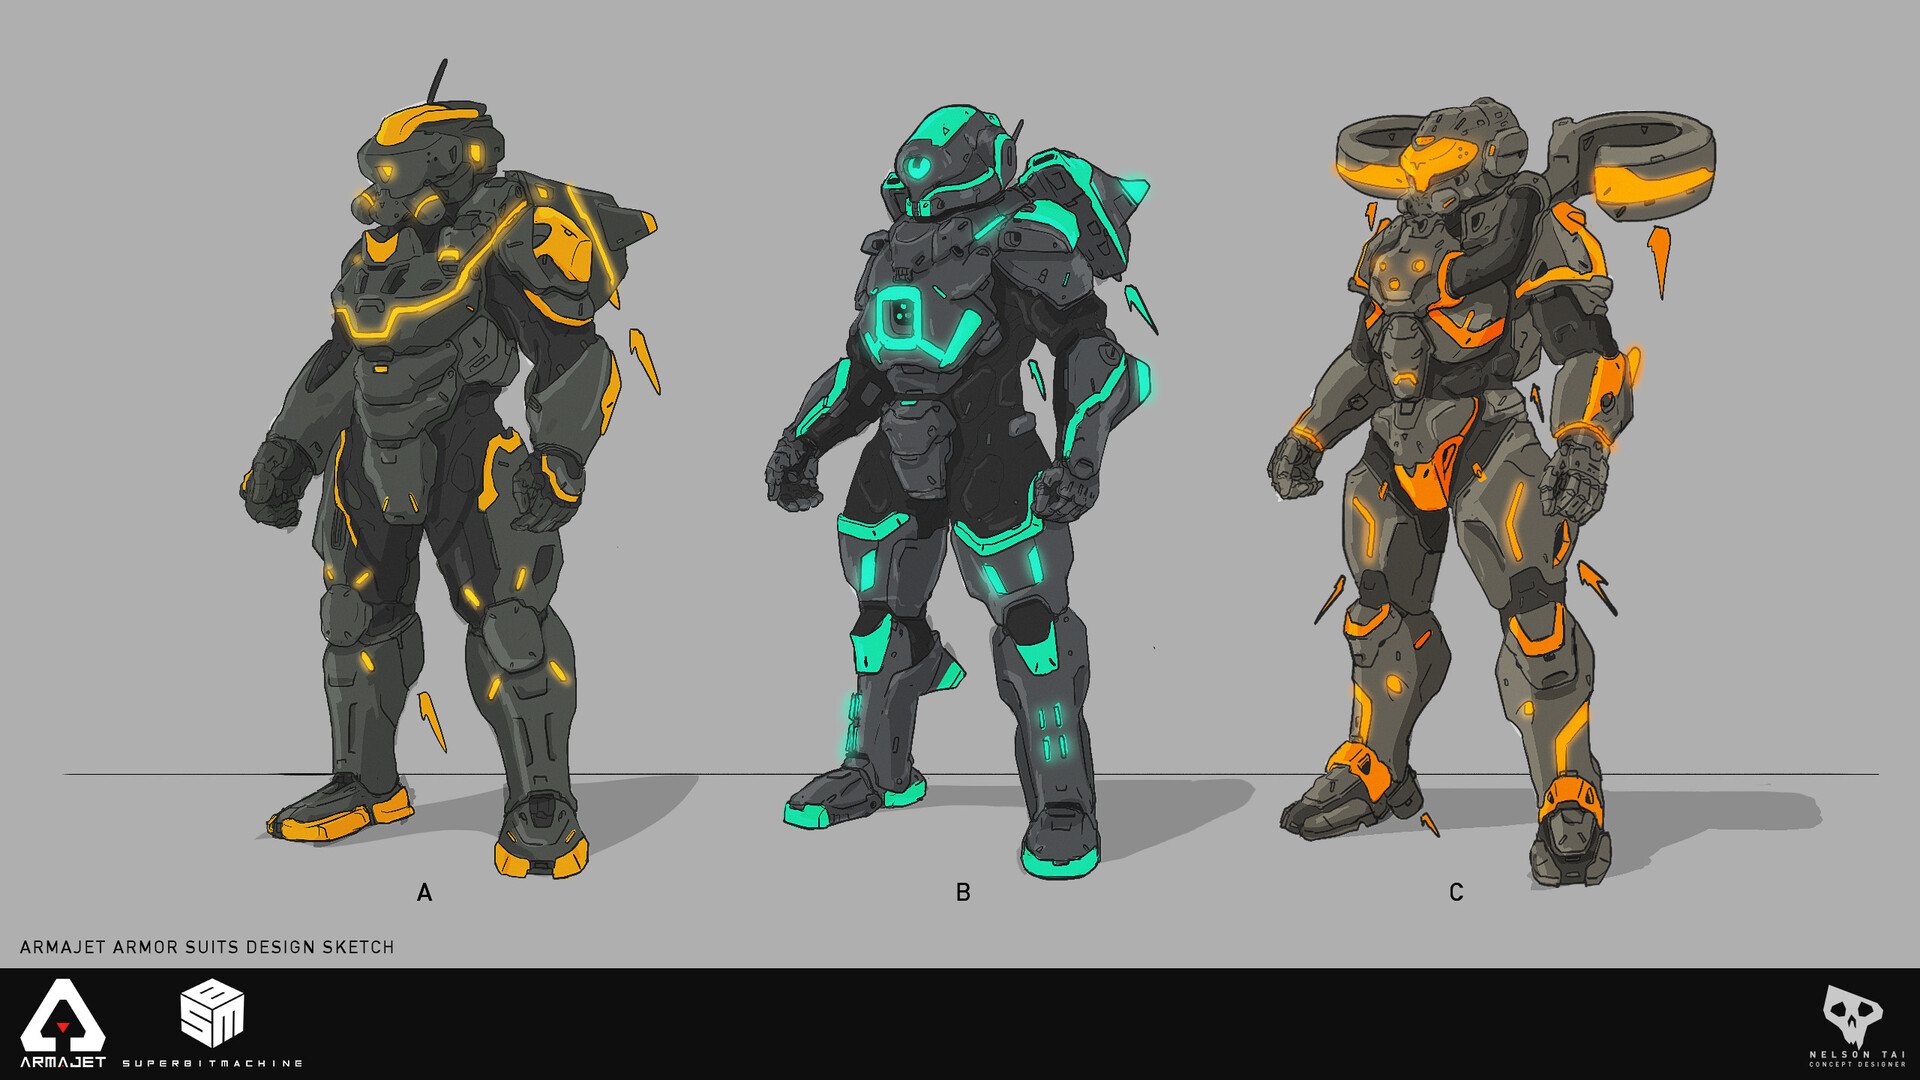 Was an important feature to have glowing armor to make the design more recognizable during the fast gameplay.